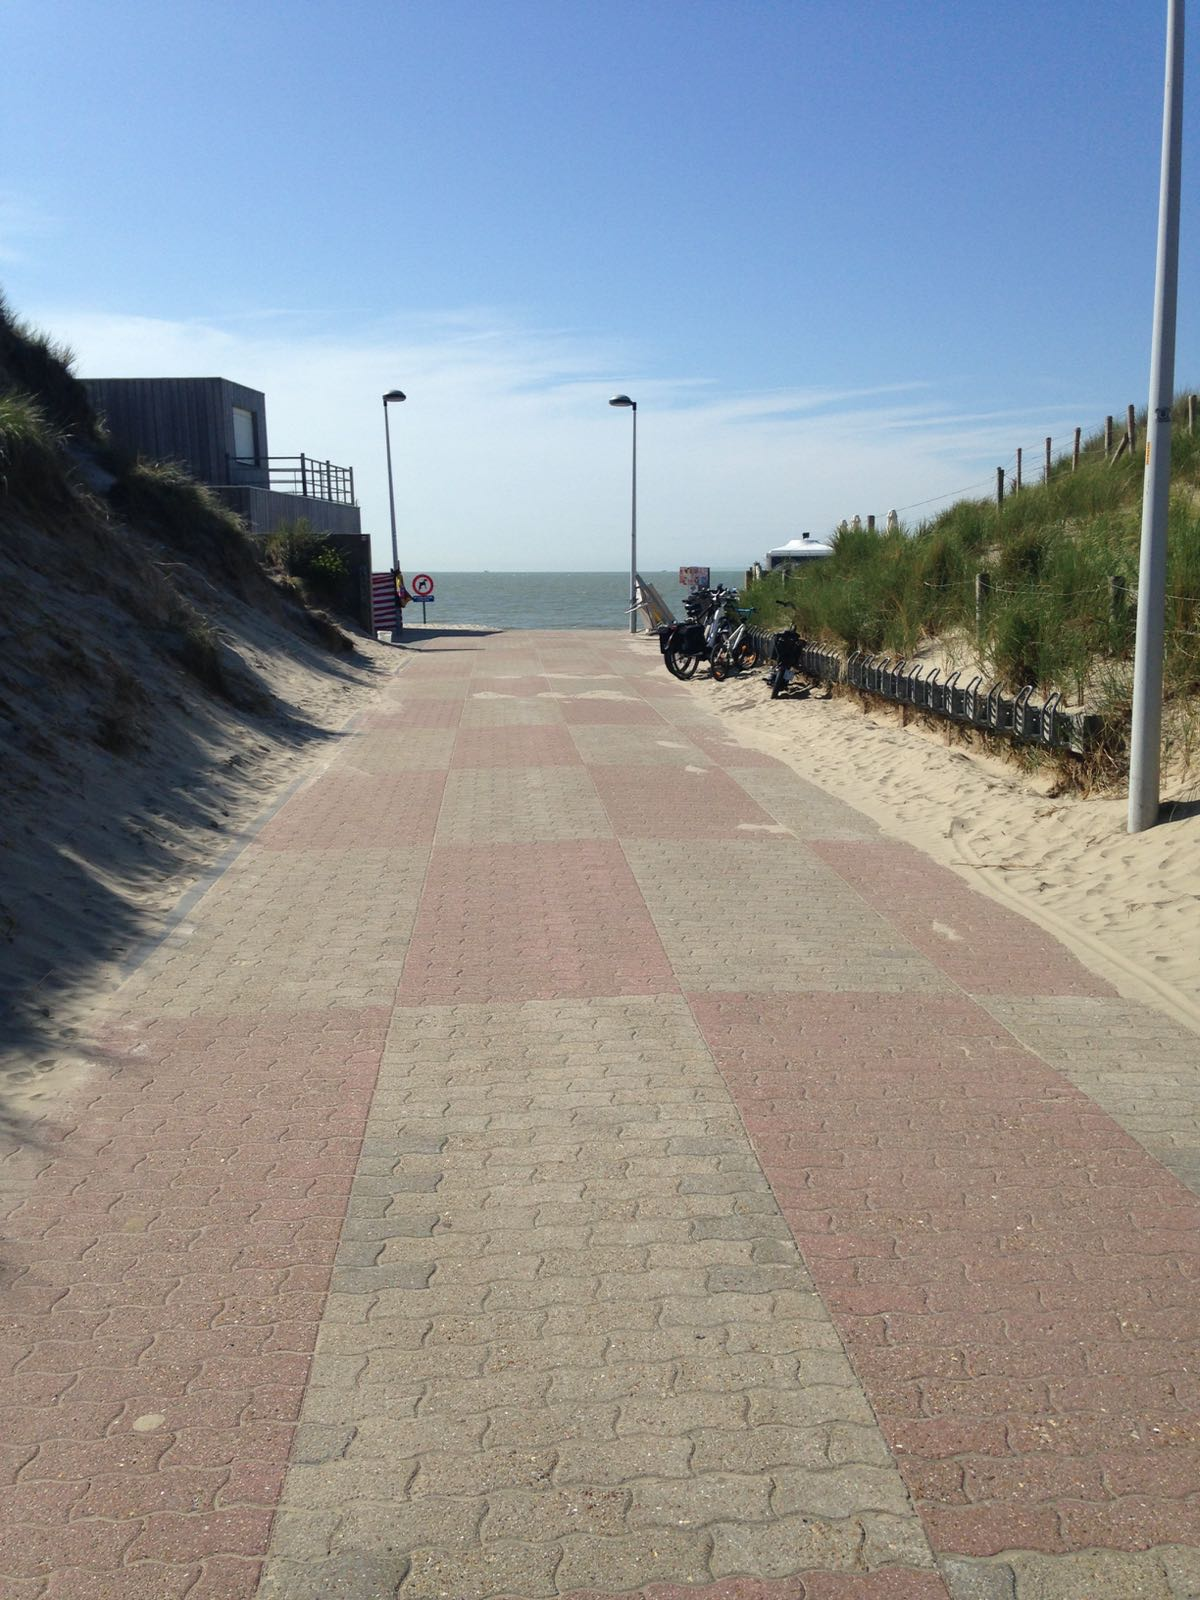 http://www.nordsee-chalet.com/wp-content/uploads/2017/03/IMG-20170218-WA0030.jpg